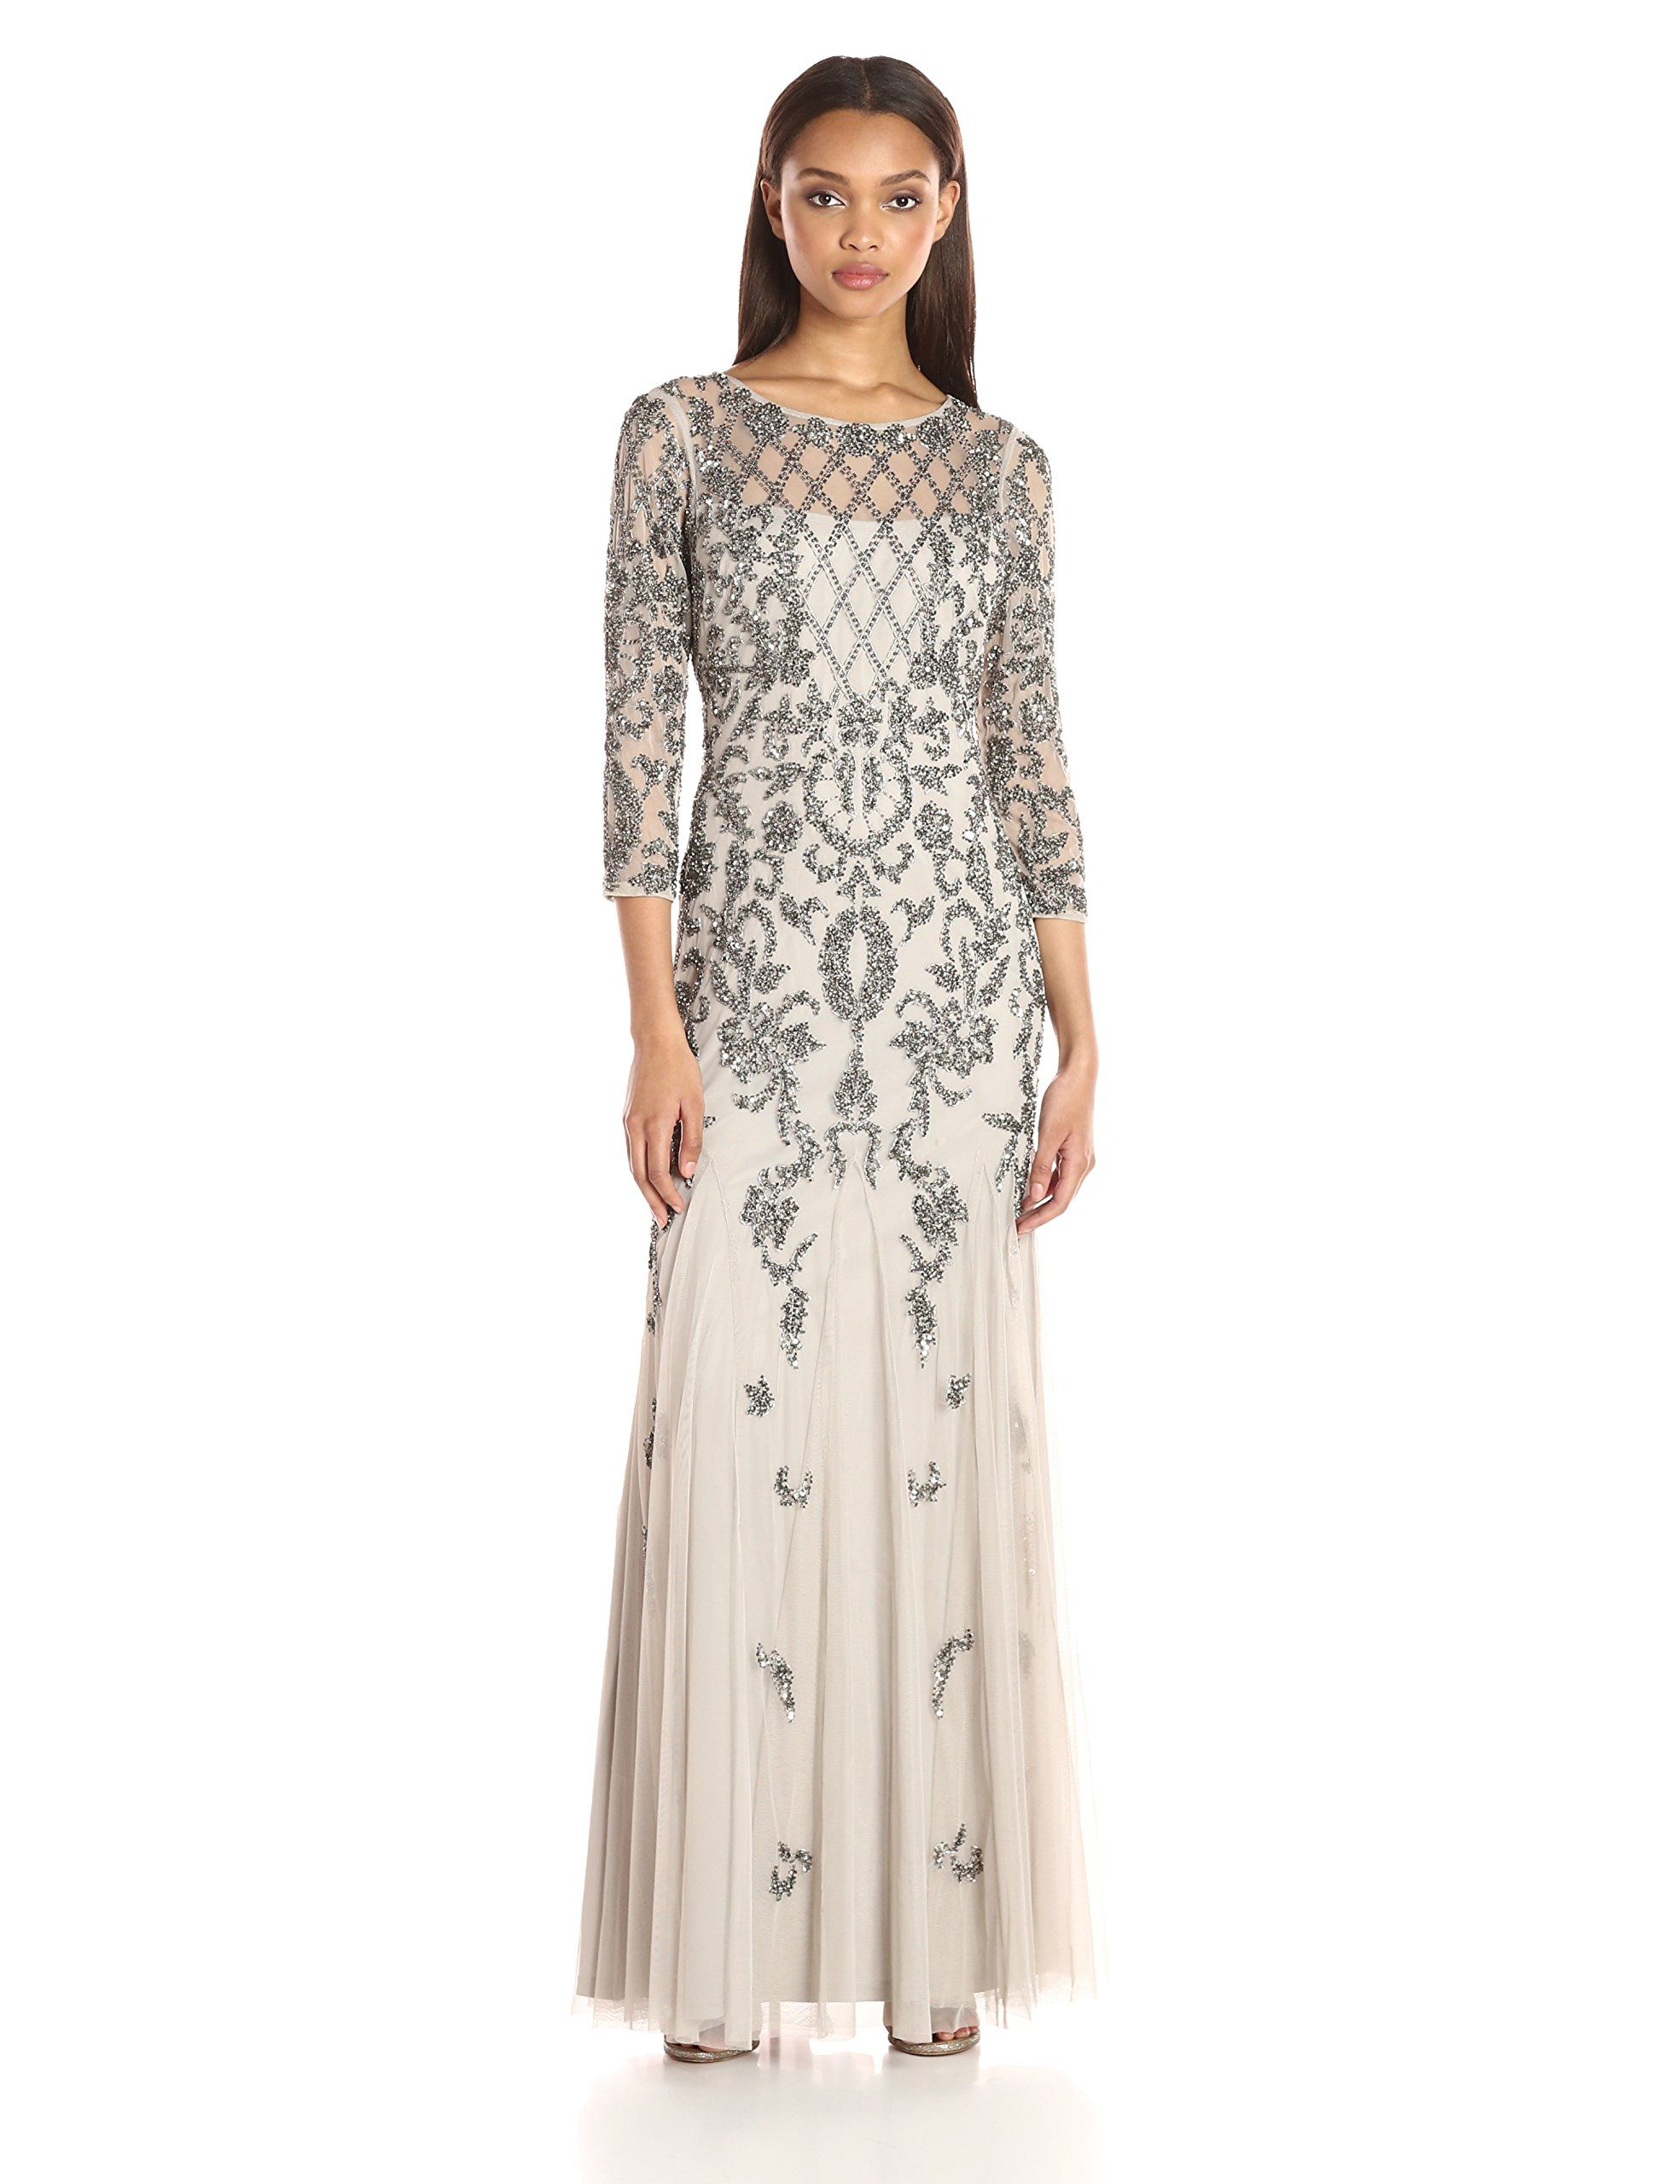 Adrianna papell womenus long sleeve beaded gown silver